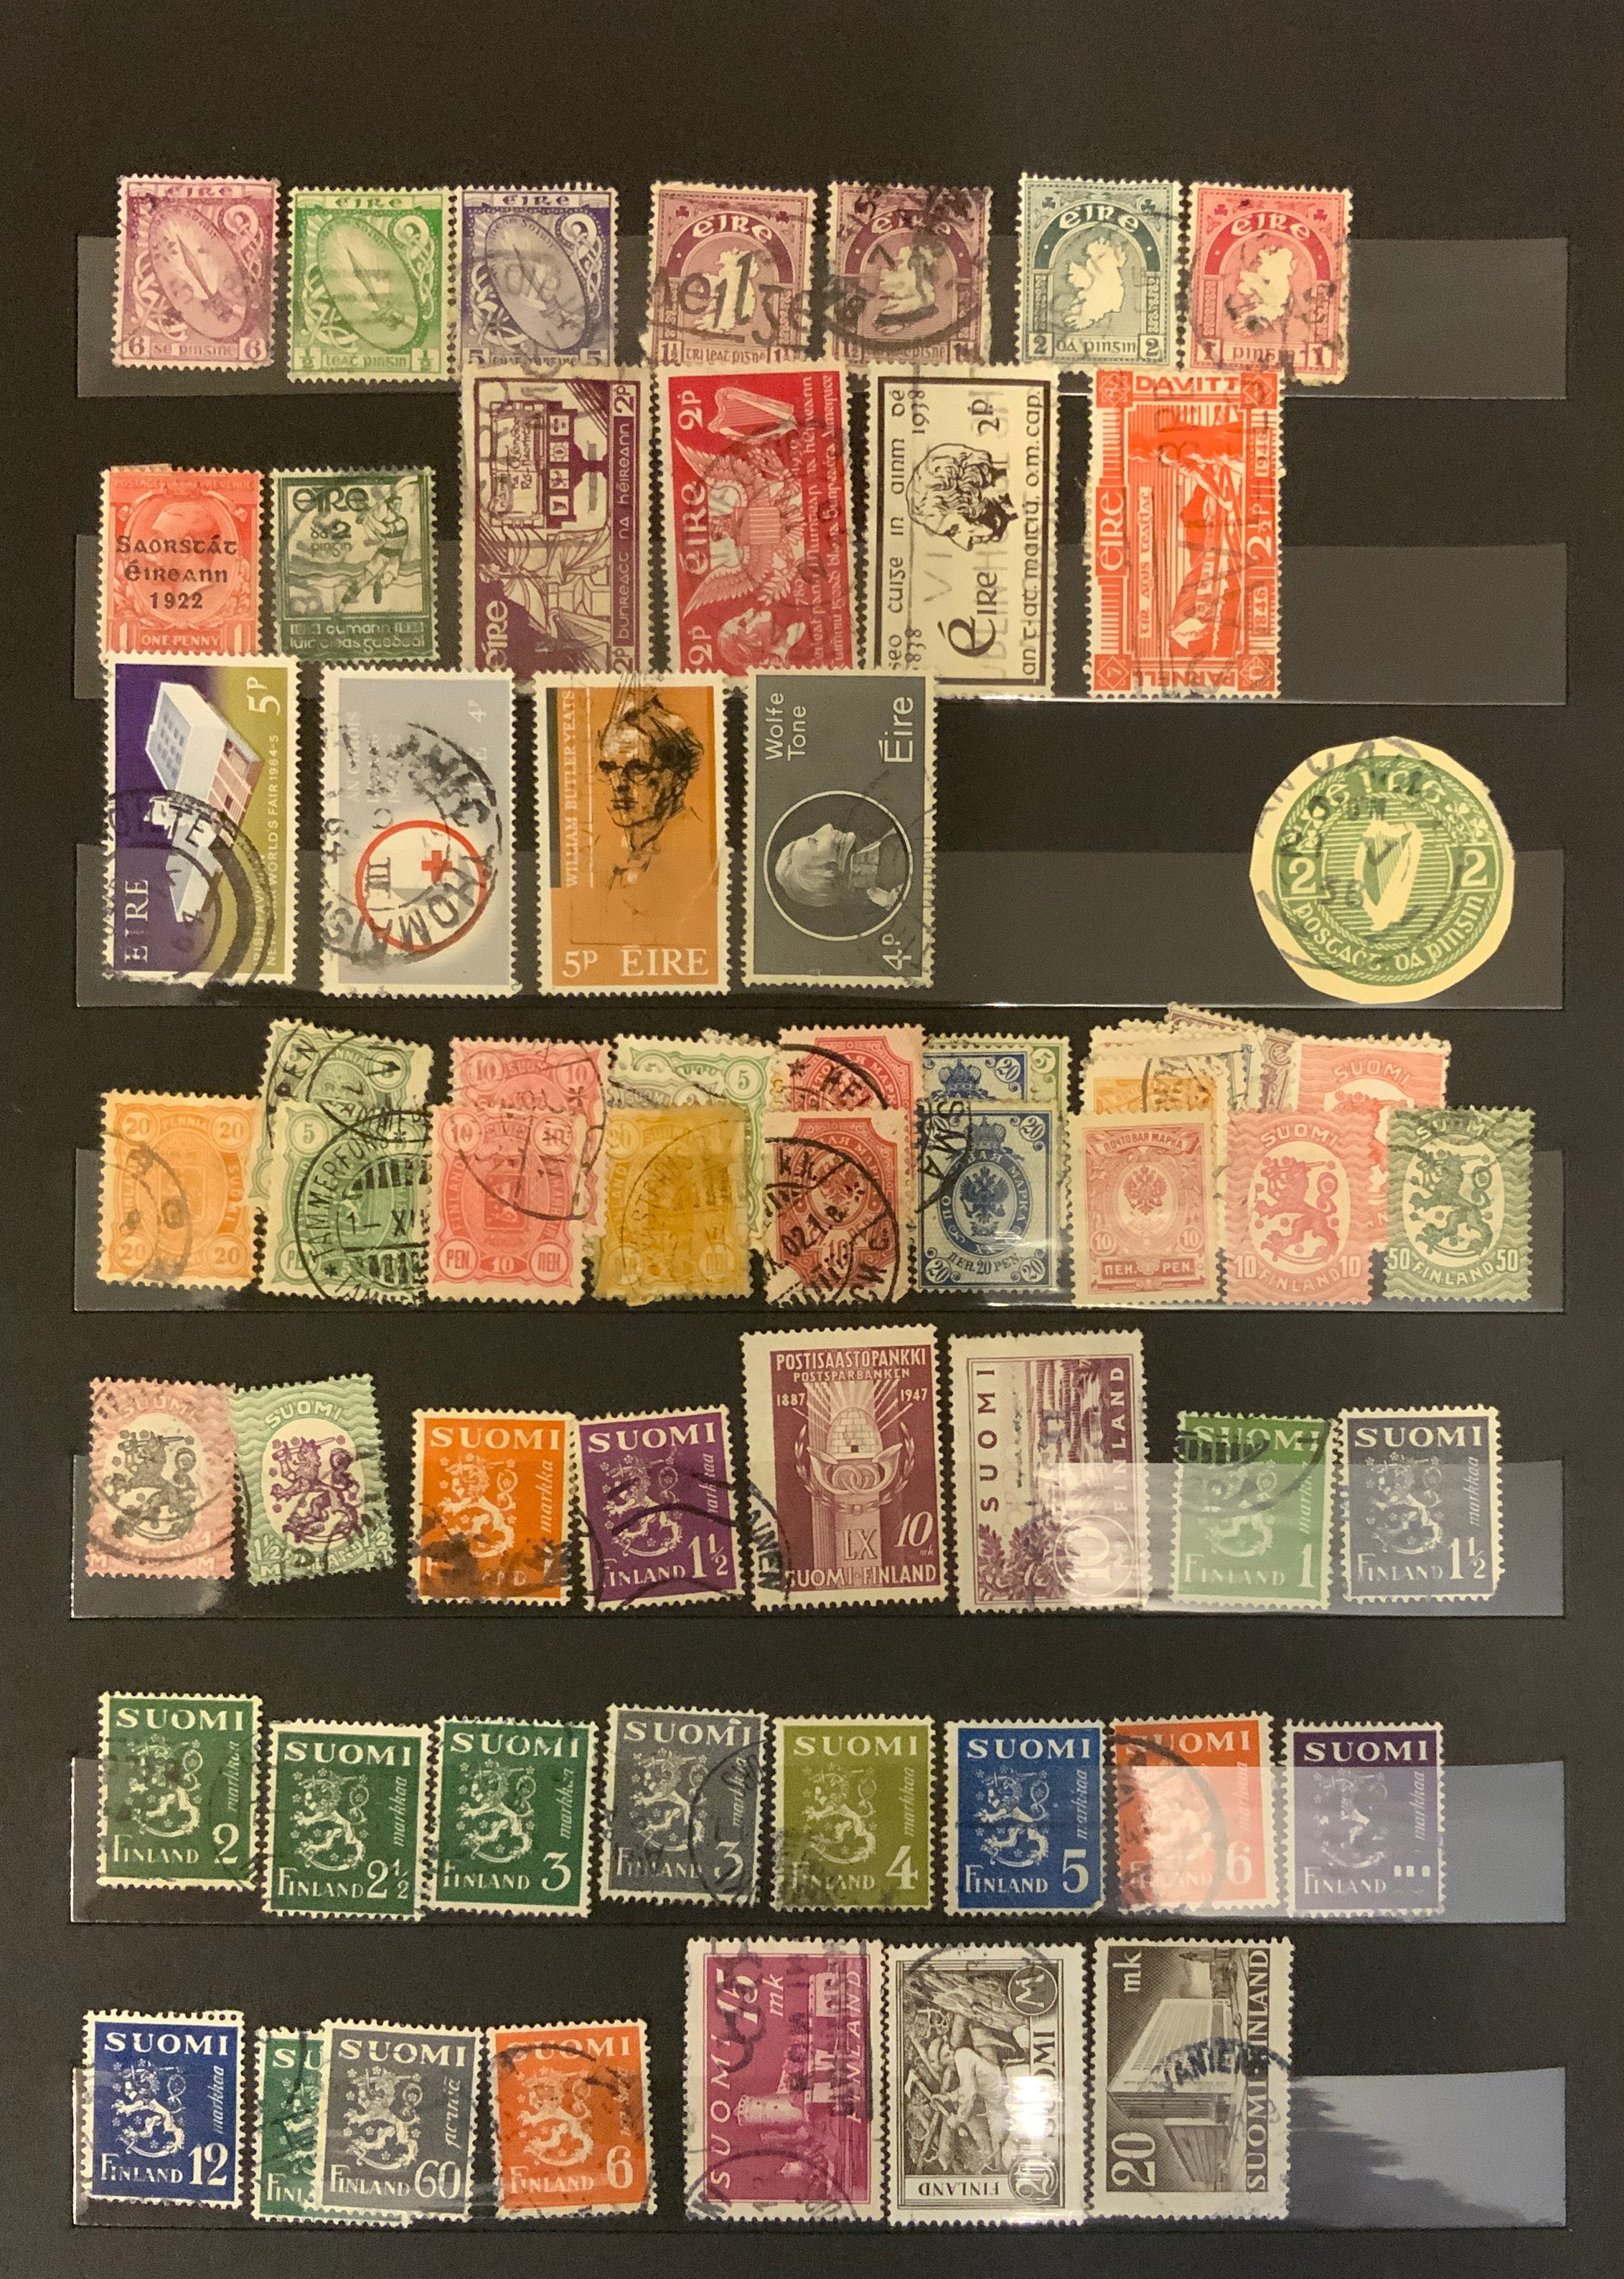 STOCKBOOK WITH STAMPS FROM VARIOUS COUNTRIES INCLUDING AUSTRIA, BELGIUM, FRANCE - Image 3 of 16